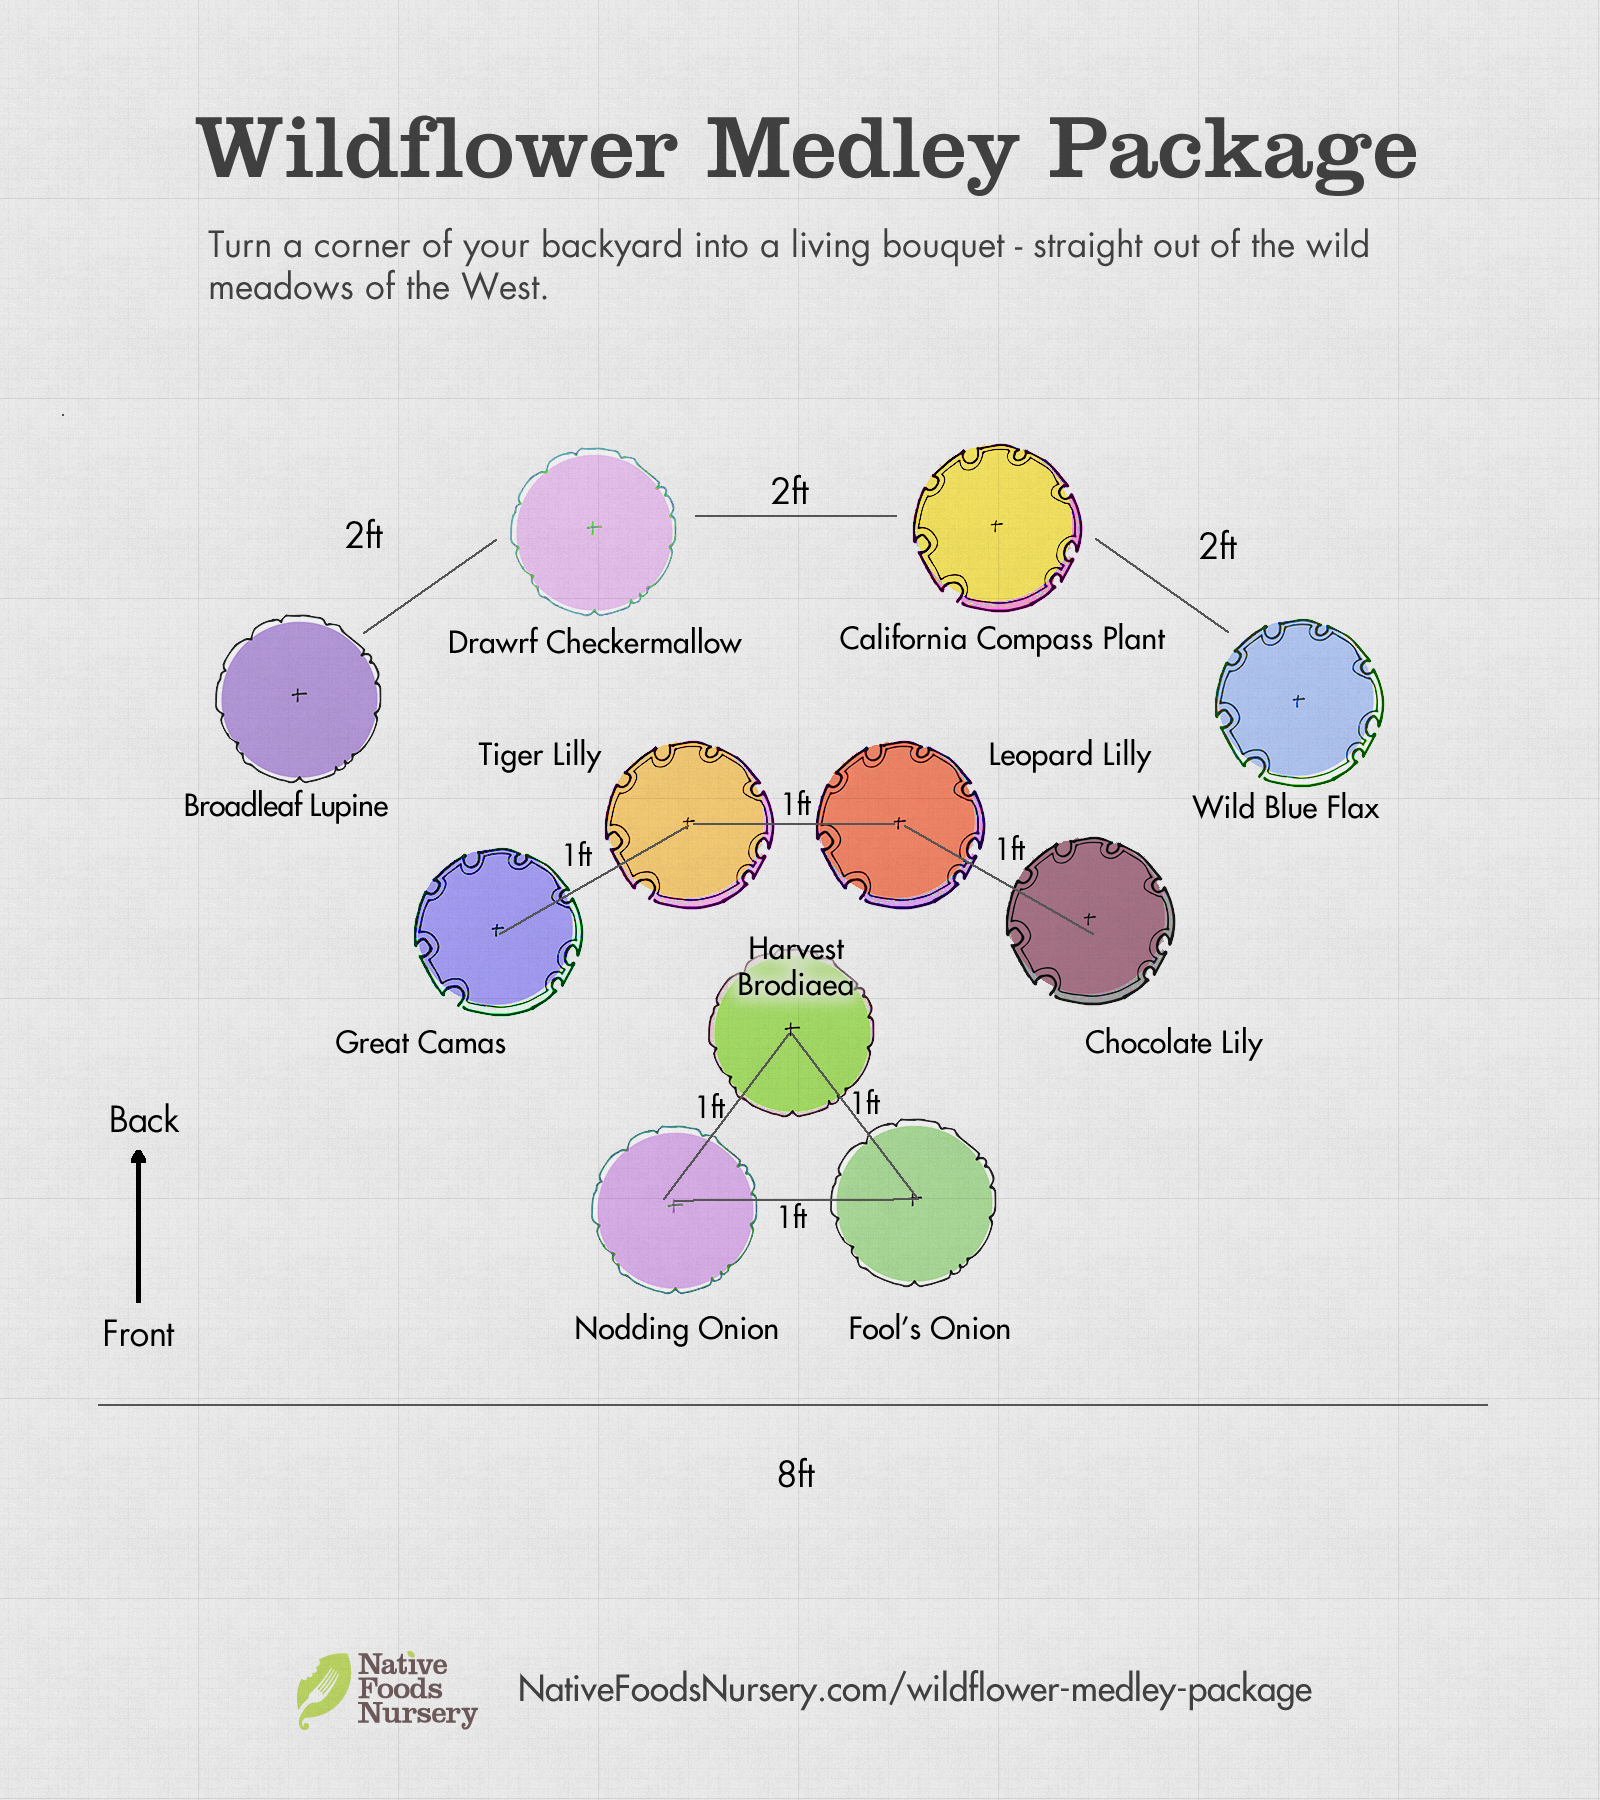 wildflower-medley-package.jpg